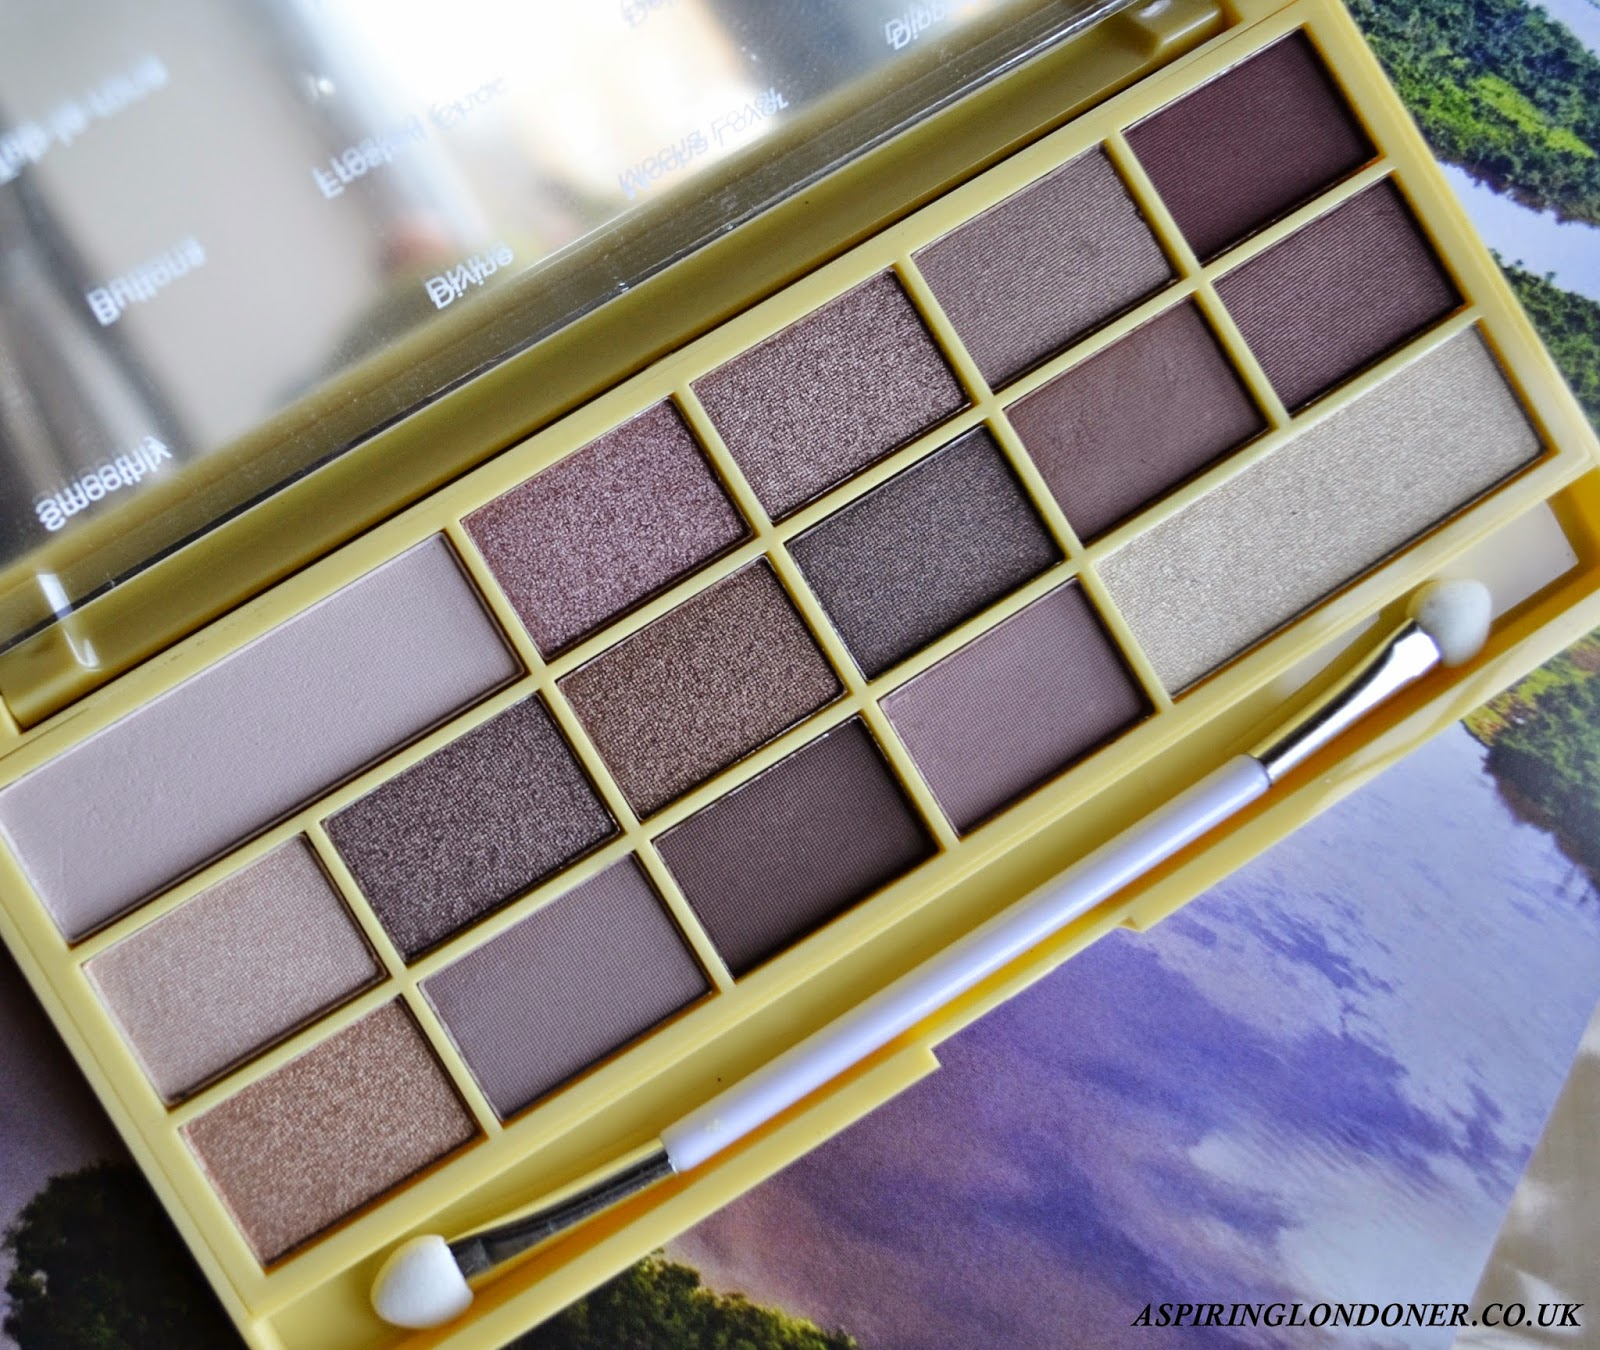 I heart Makeup Naked Chocolate Palette Review - Aspiring Londoner